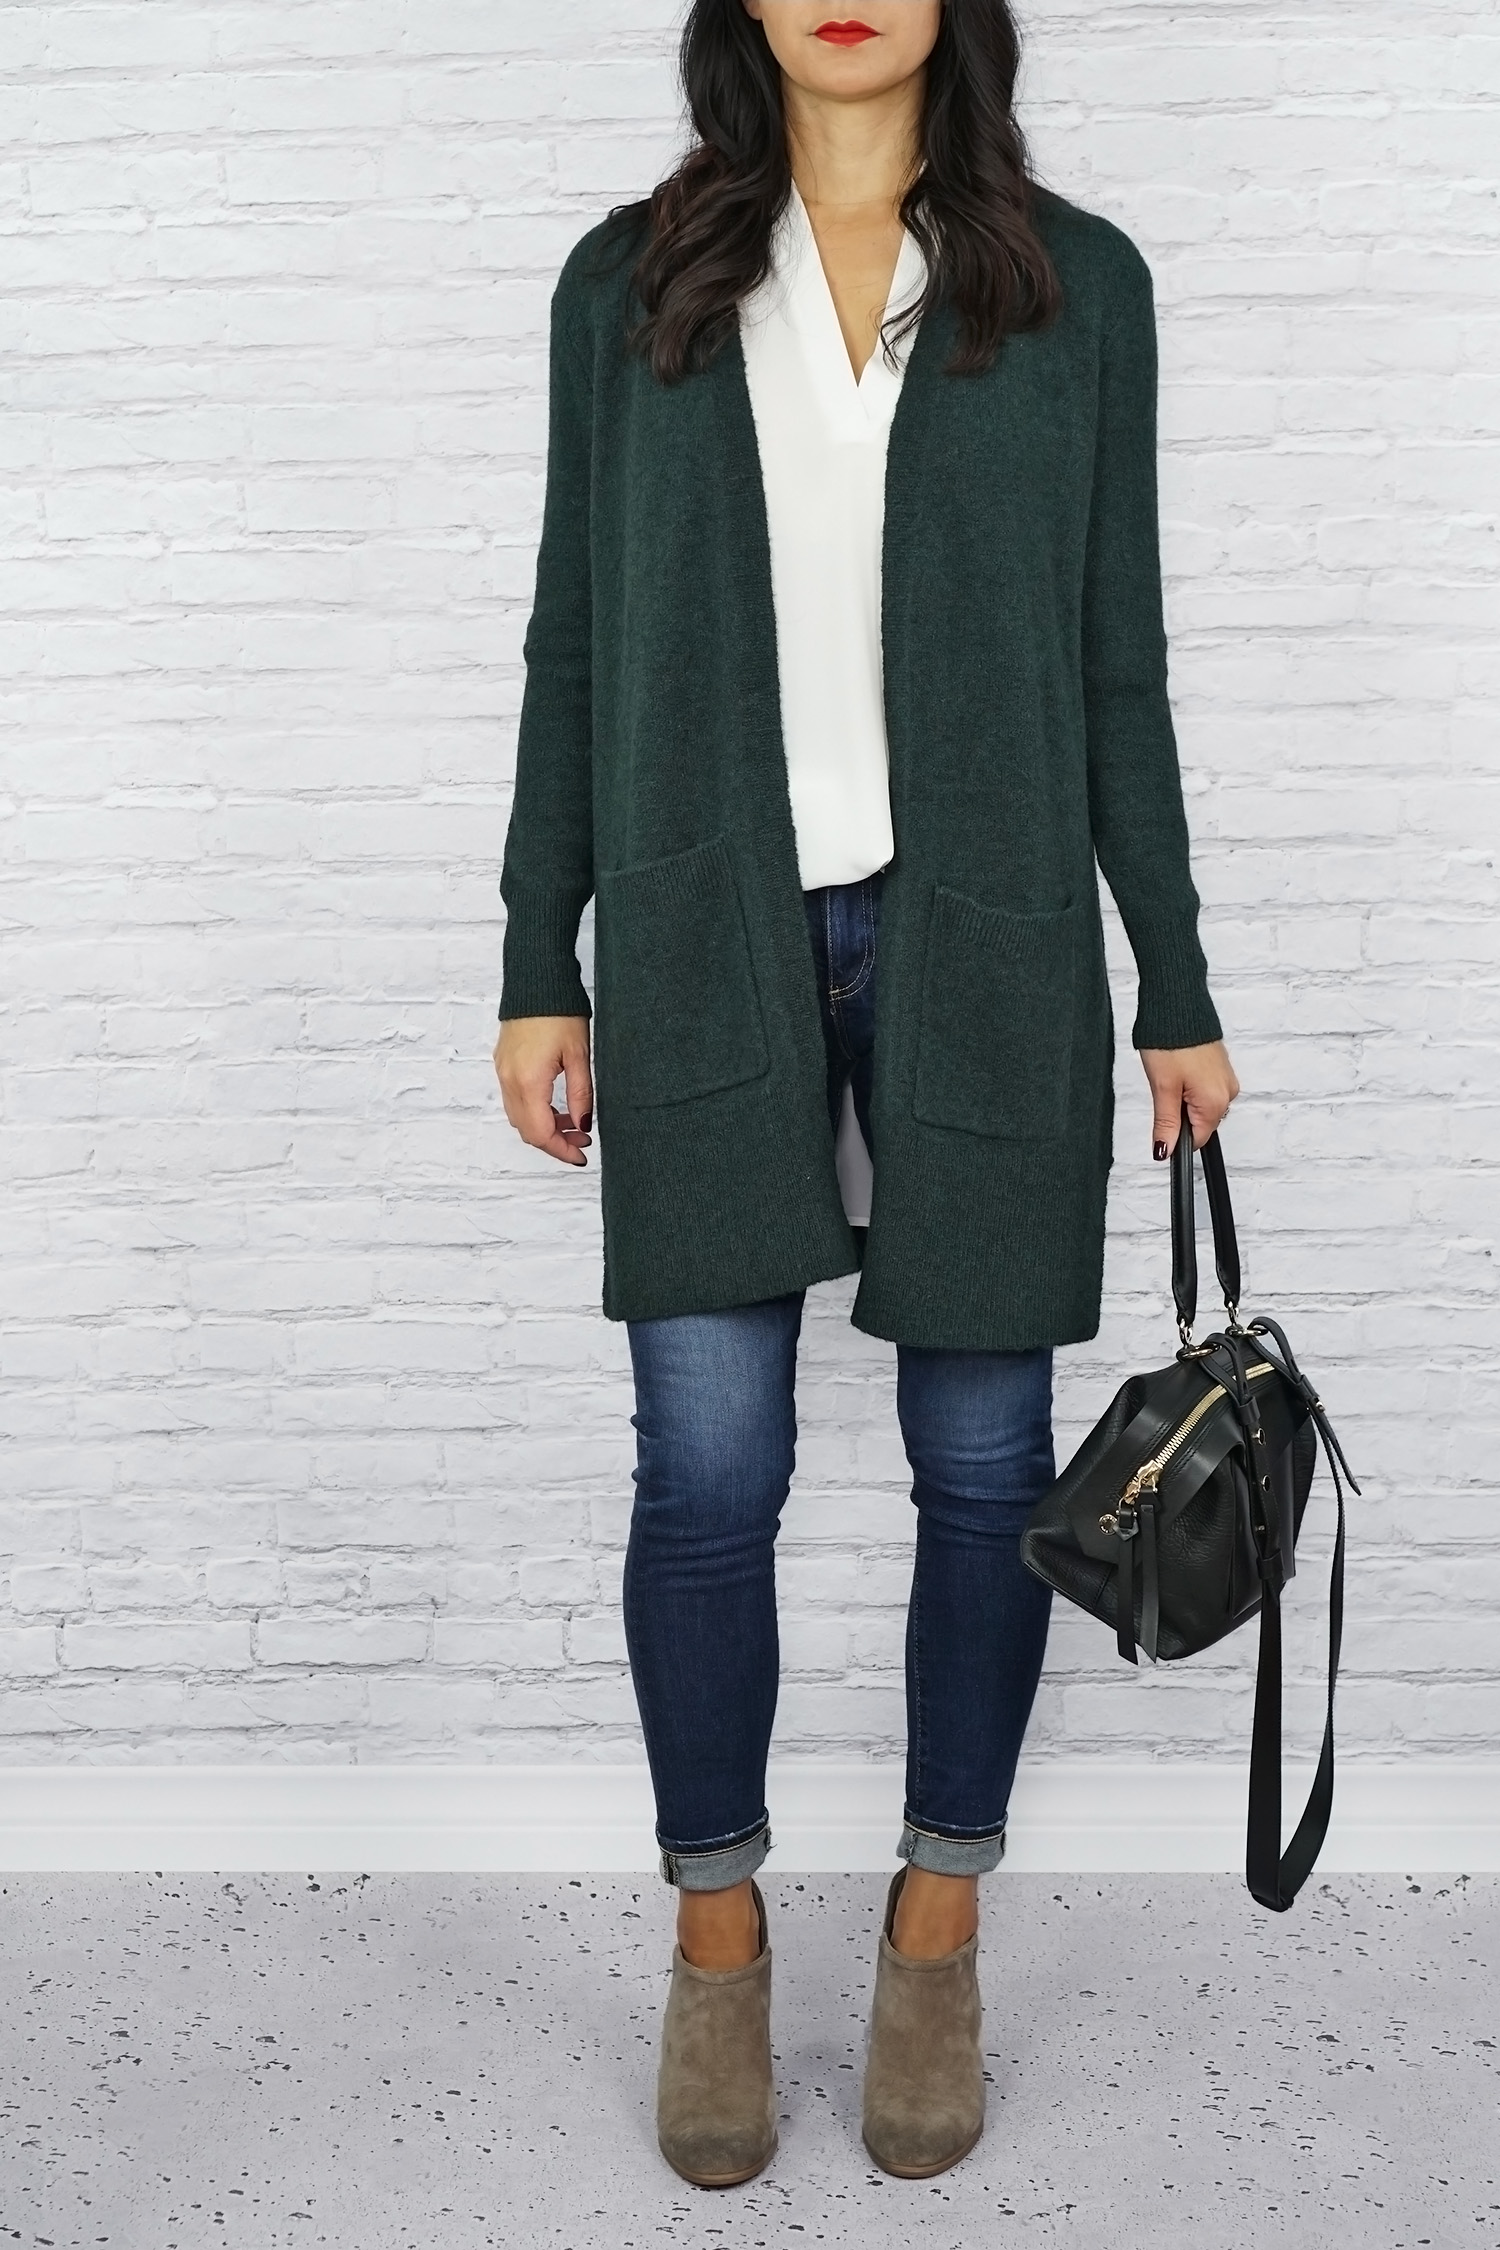 Madewell Cardigan; Concealed Carry Women